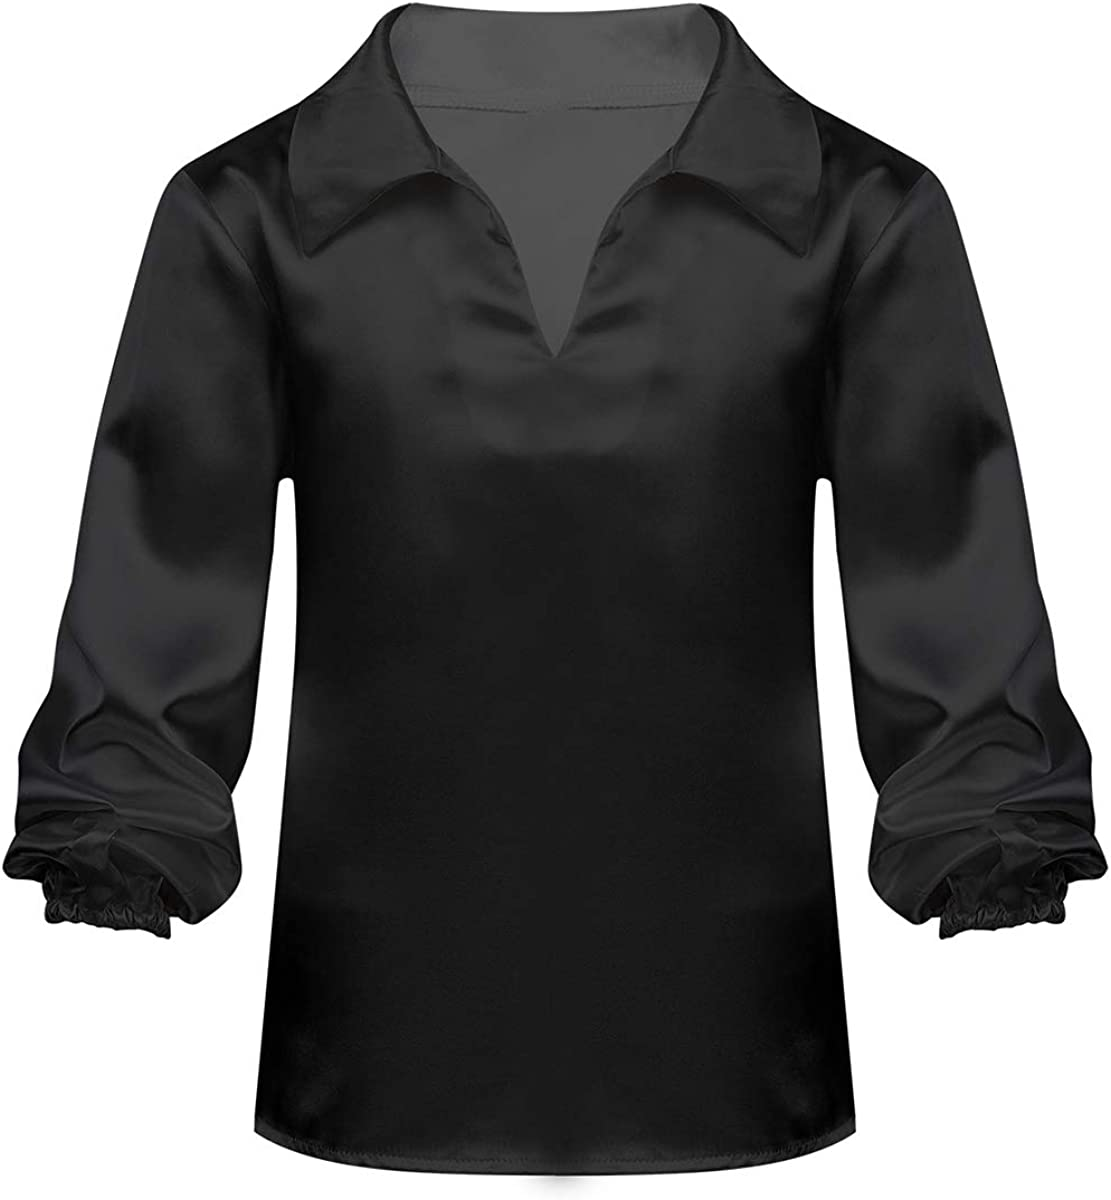 CHICTRY Boys Satin Long Sleeve Ballet Dance Shirt Ballroom Dancewear Dancing Latin Salsa Performance Pullover Top Clothes